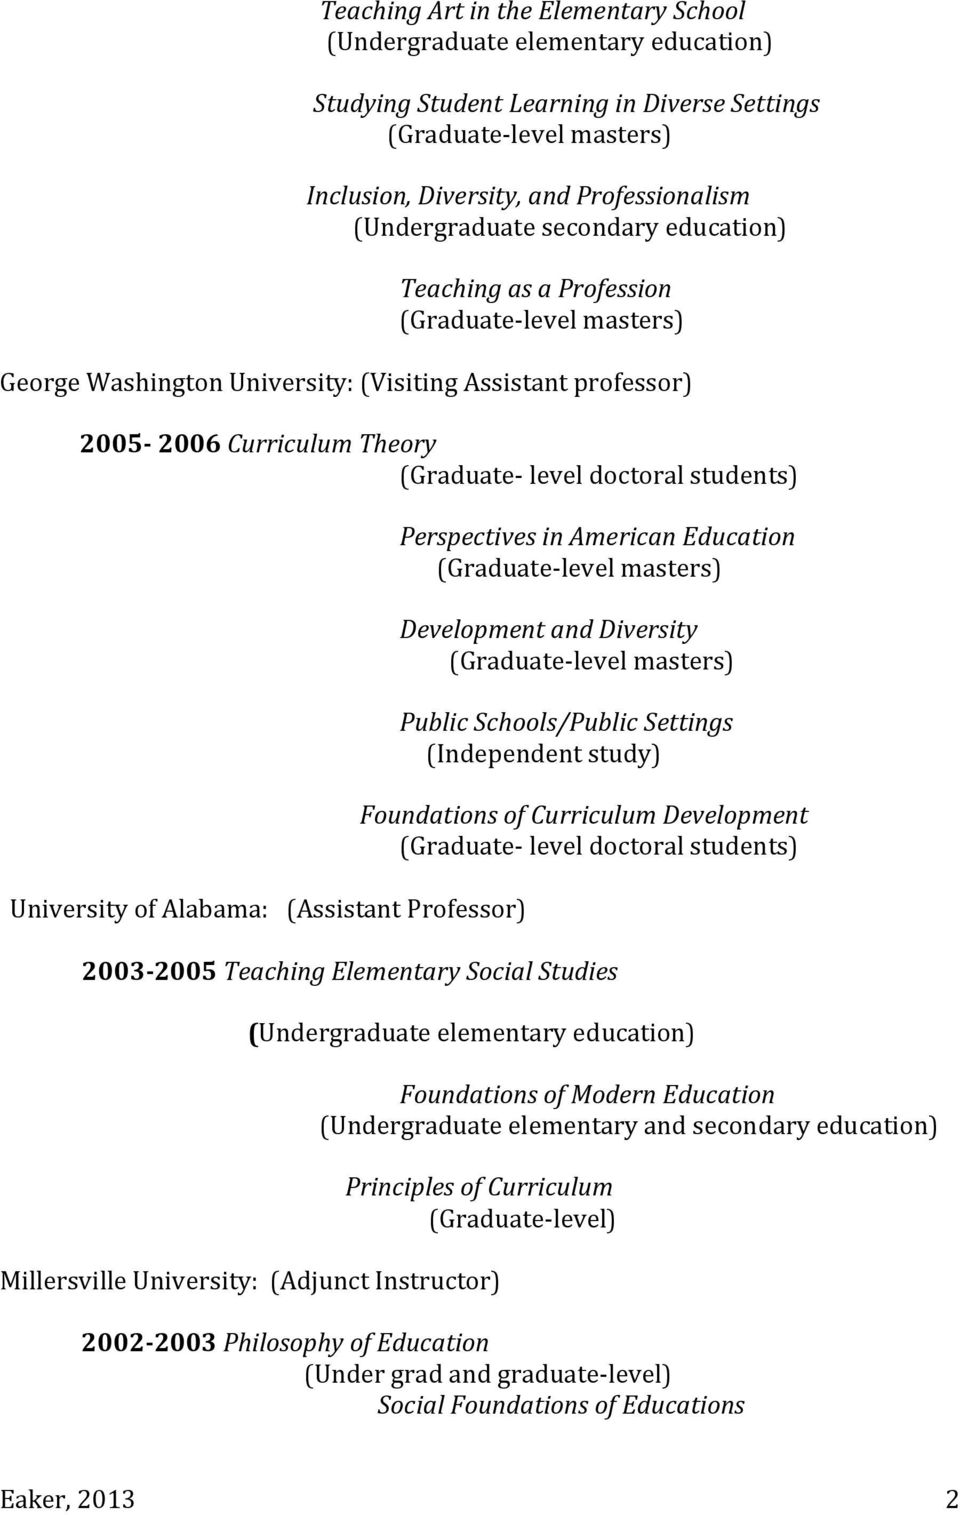 Perspectives in American Education Development and Diversity Public Schools/Public Settings (Independent study) Foundations of Curriculum Development (Graduate- level doctoral students) 2003-2005